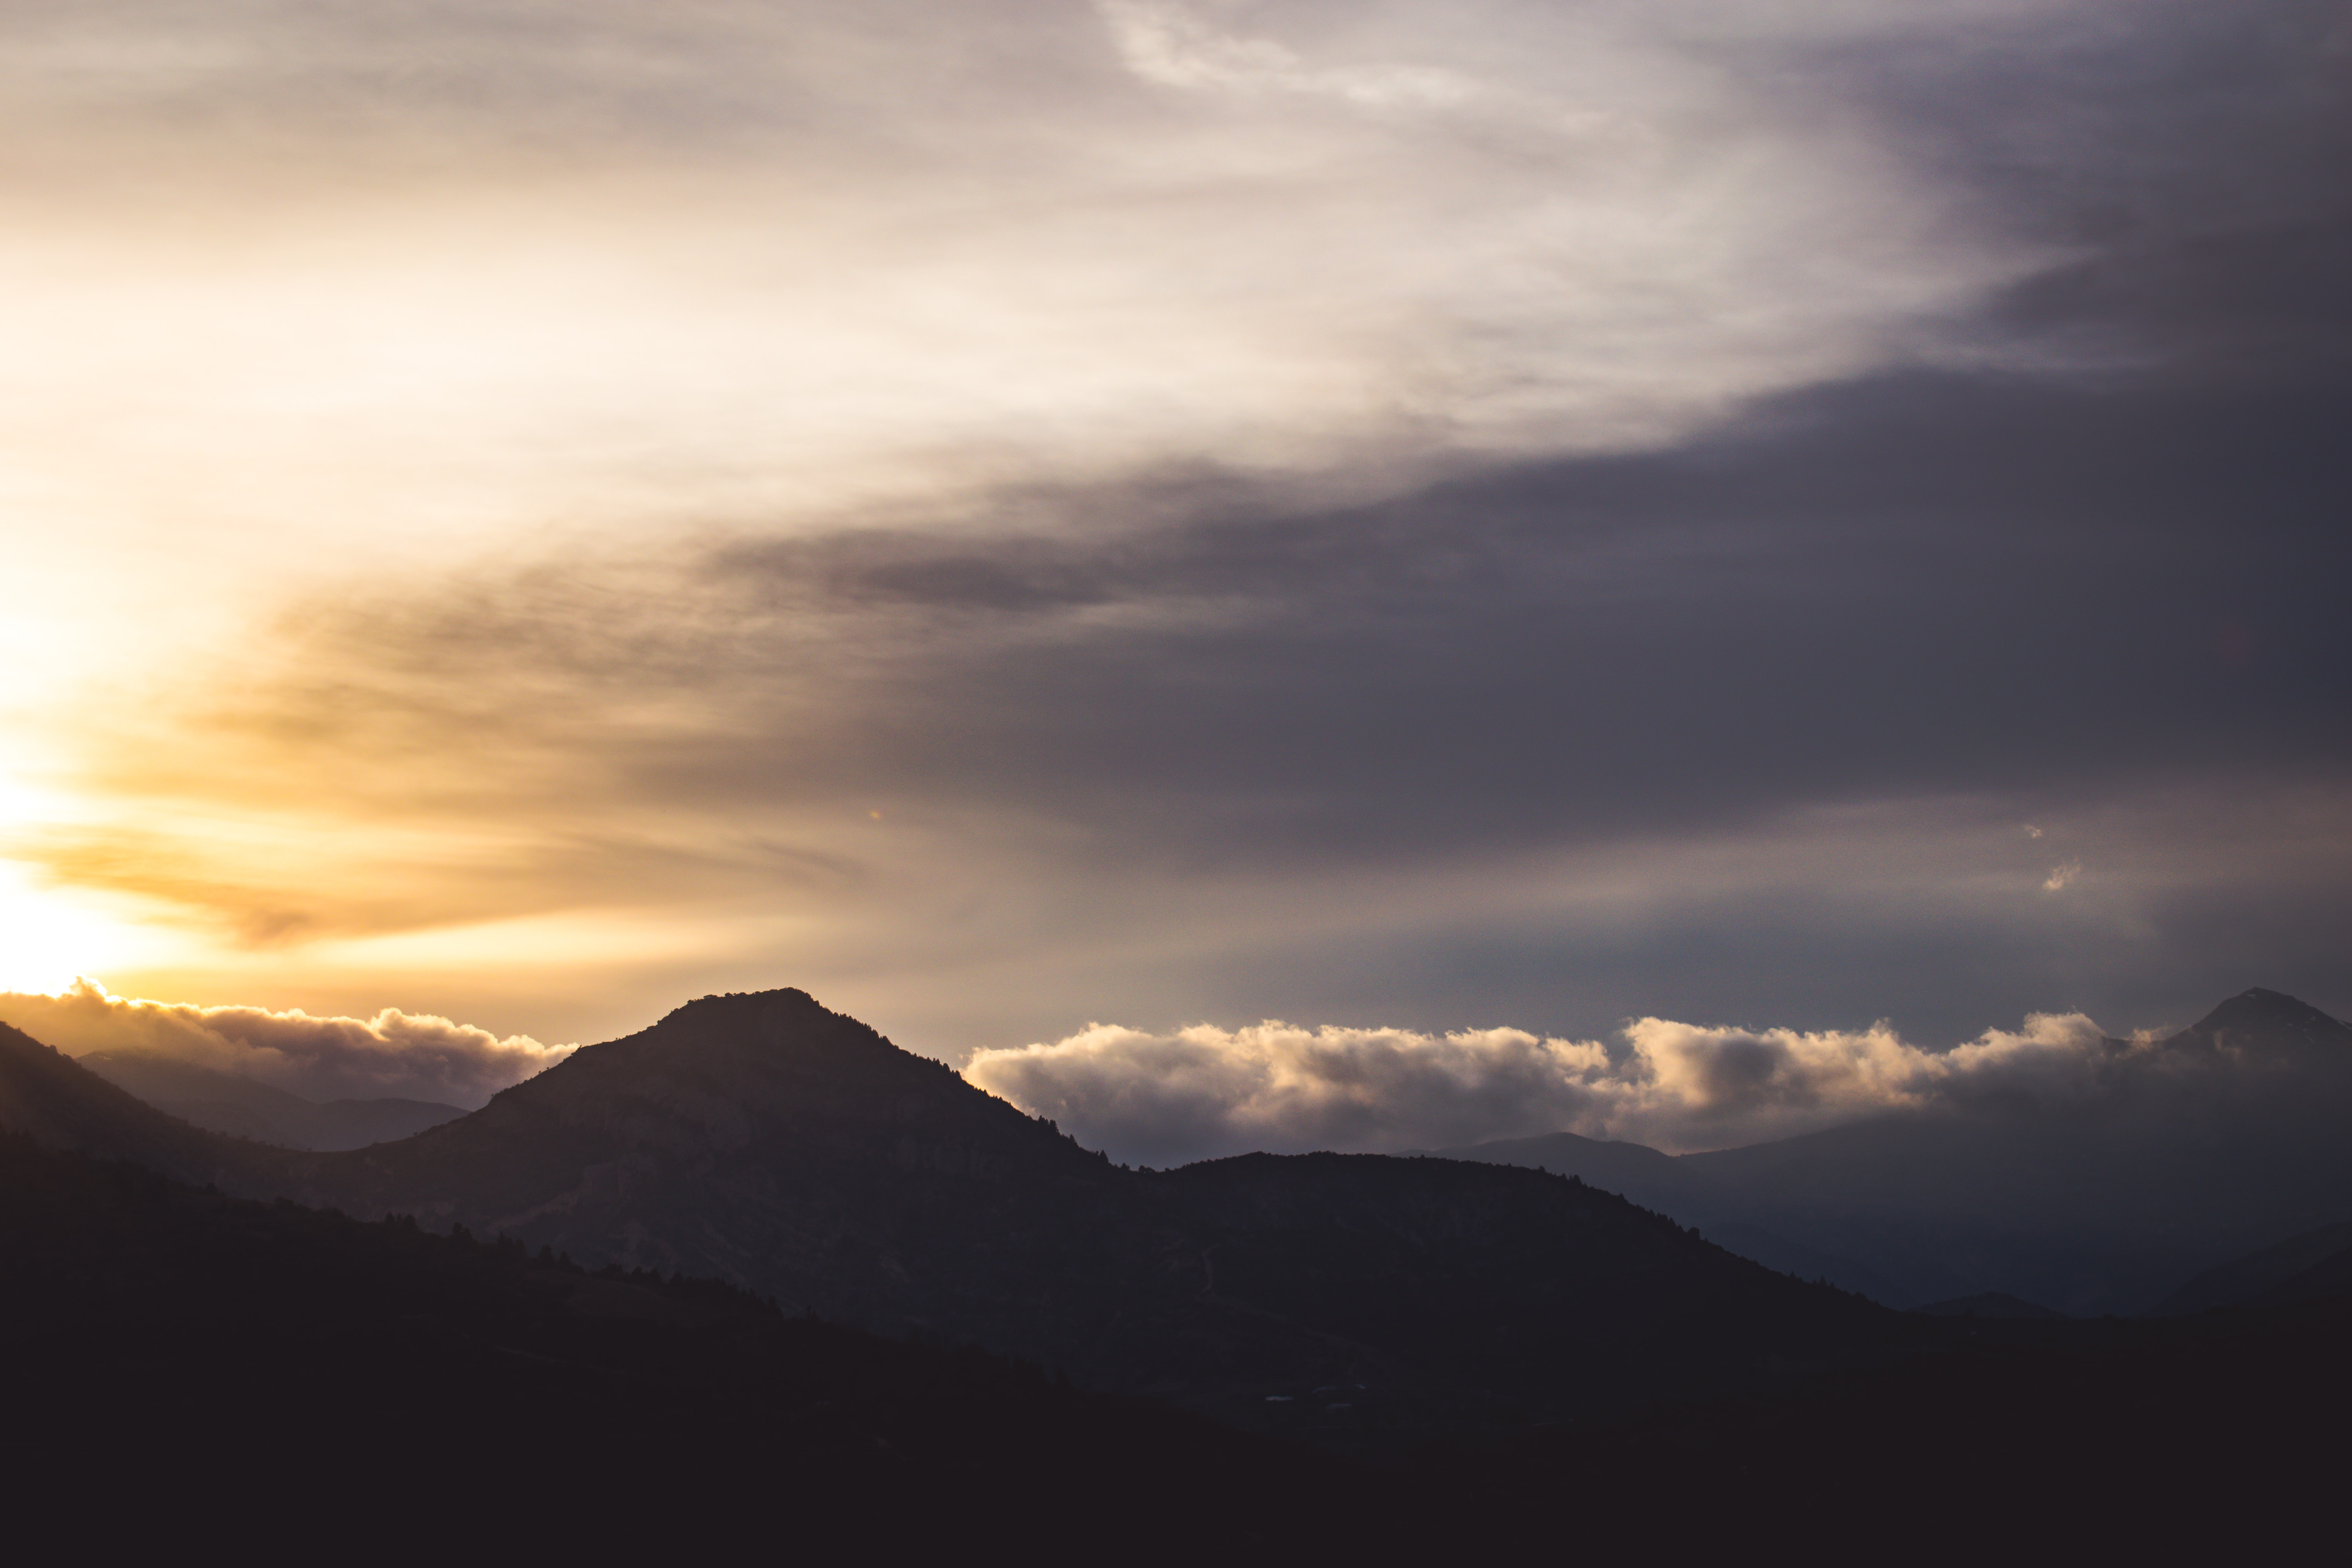 silhouette of mountain under cloudy sky at golden hour\